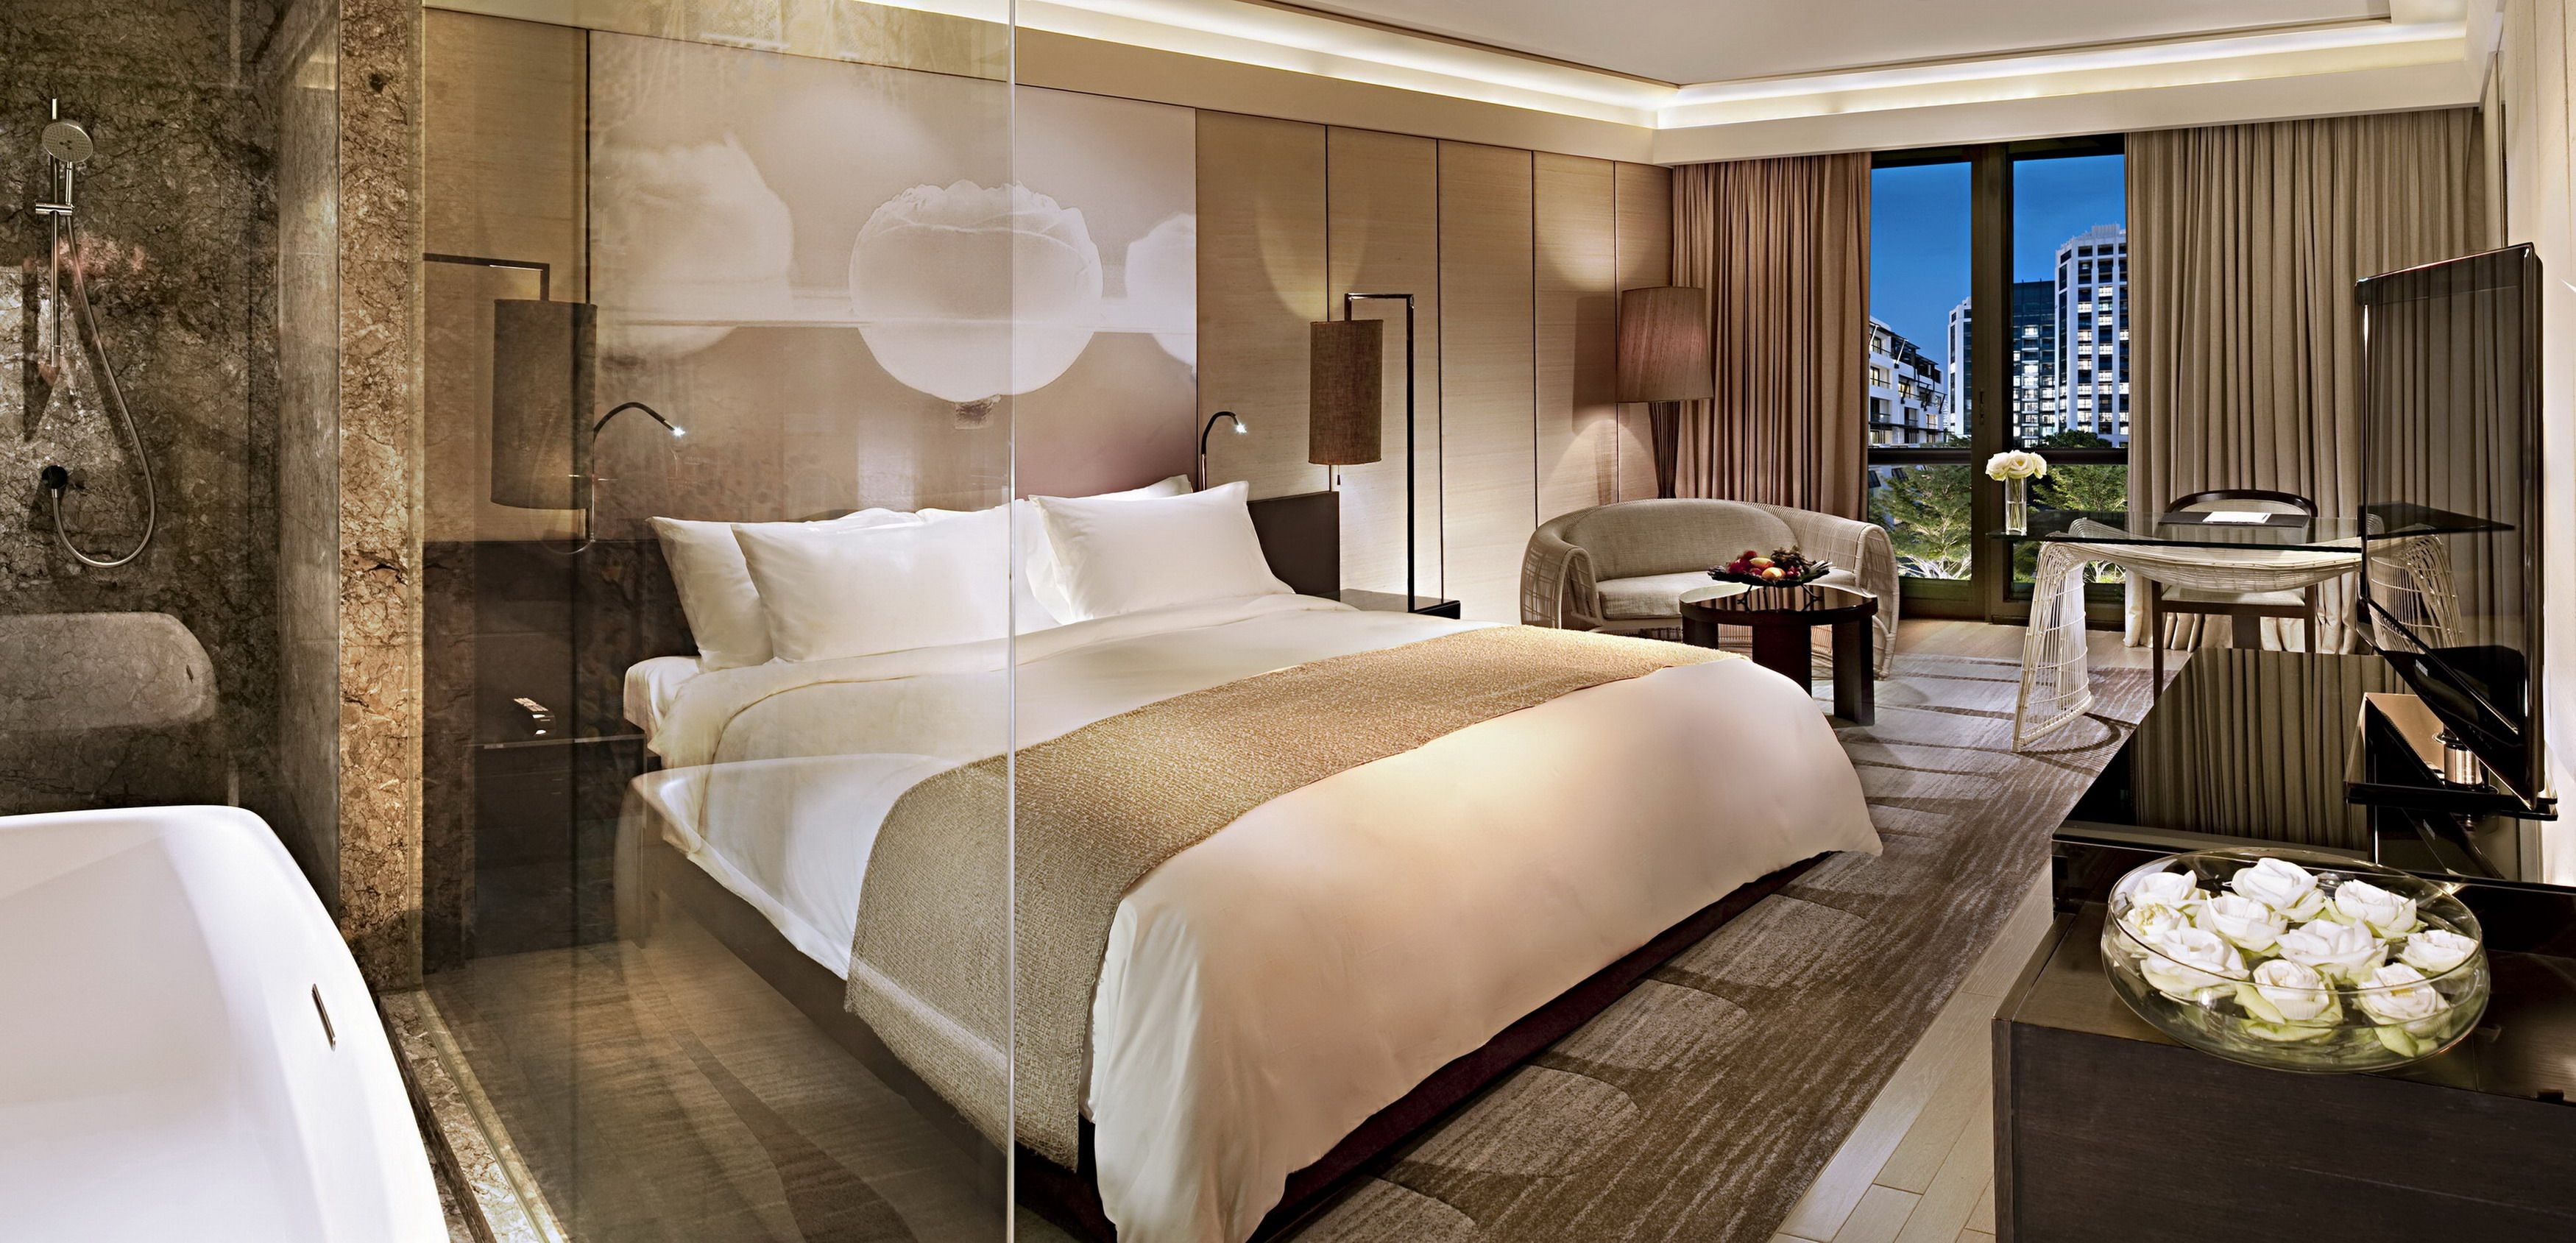 Luxury hotel rooms pictures new luxury kempinski hotel for Luxury hotel bedroom interior design